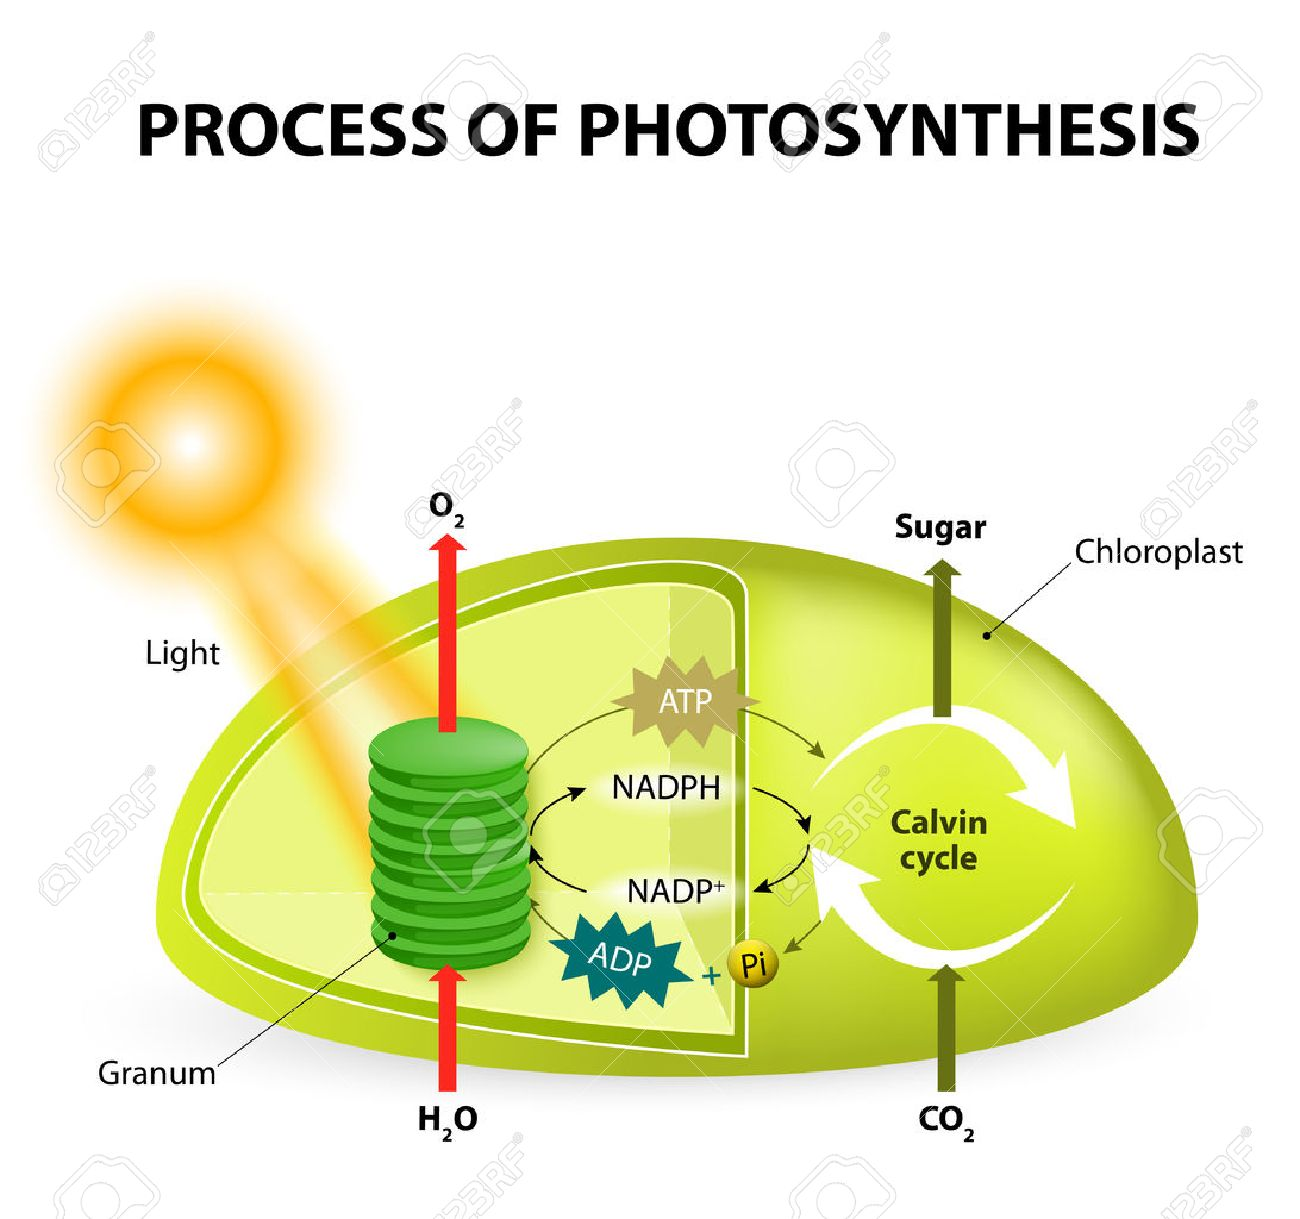 photosynthesis. diagram of the process of photosynthesis, showing